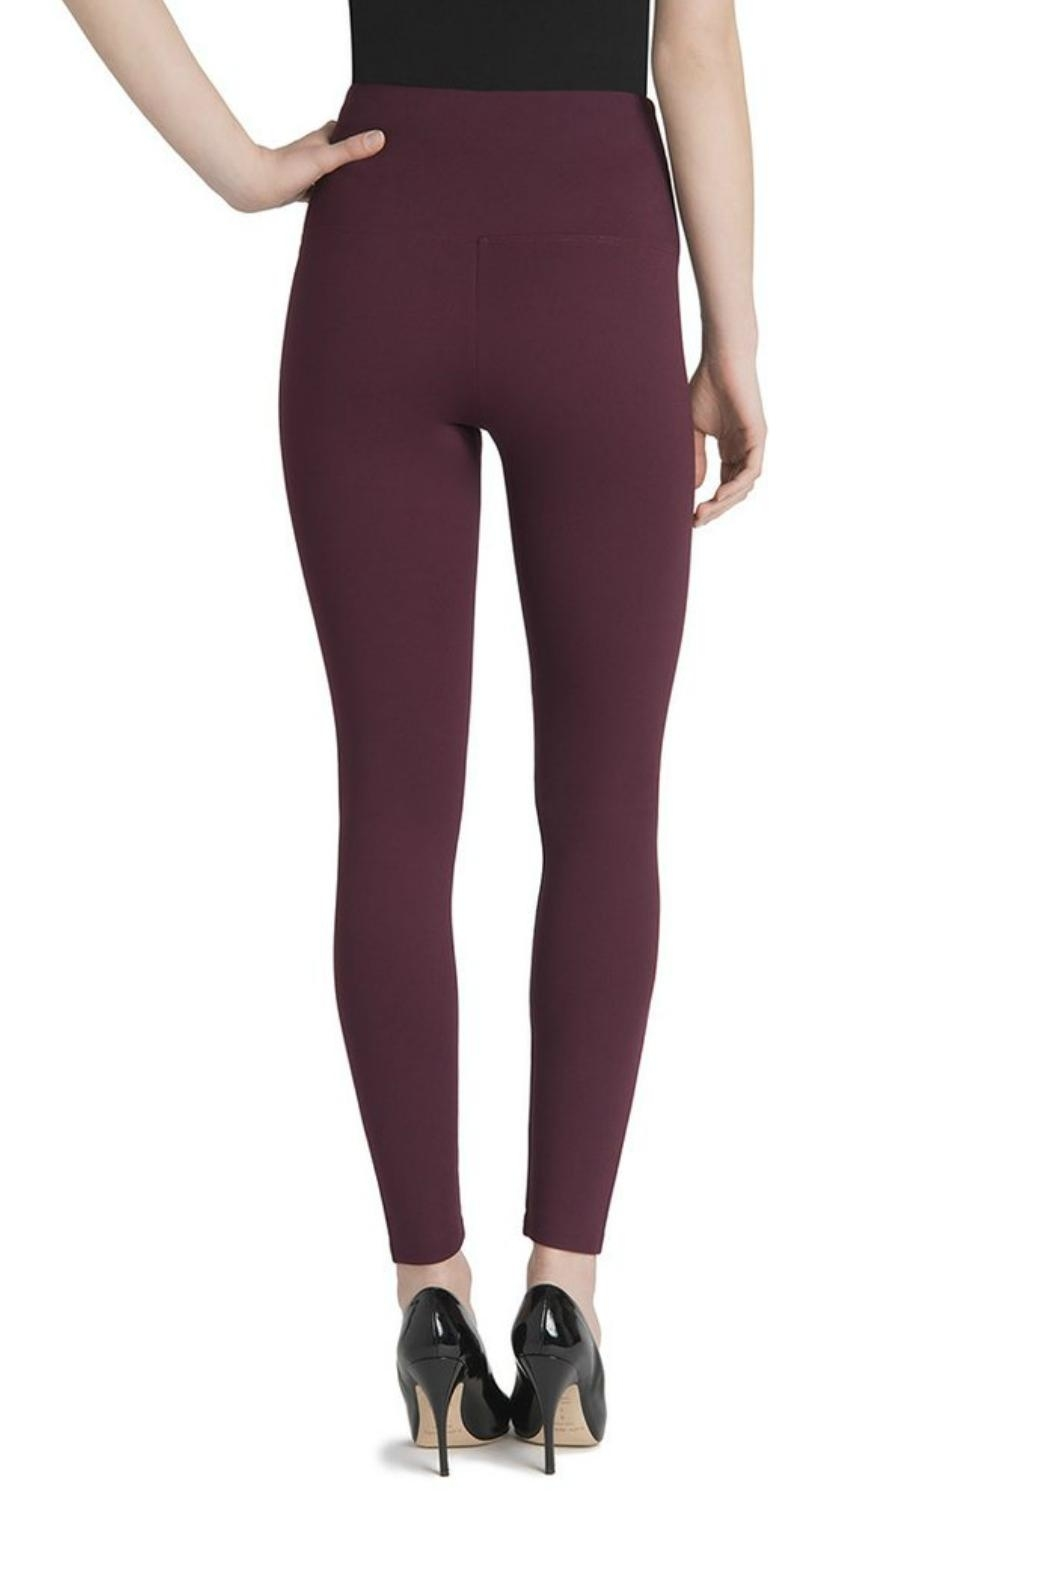 Lysse Center Seam Ponte Legging - Side Cropped Image